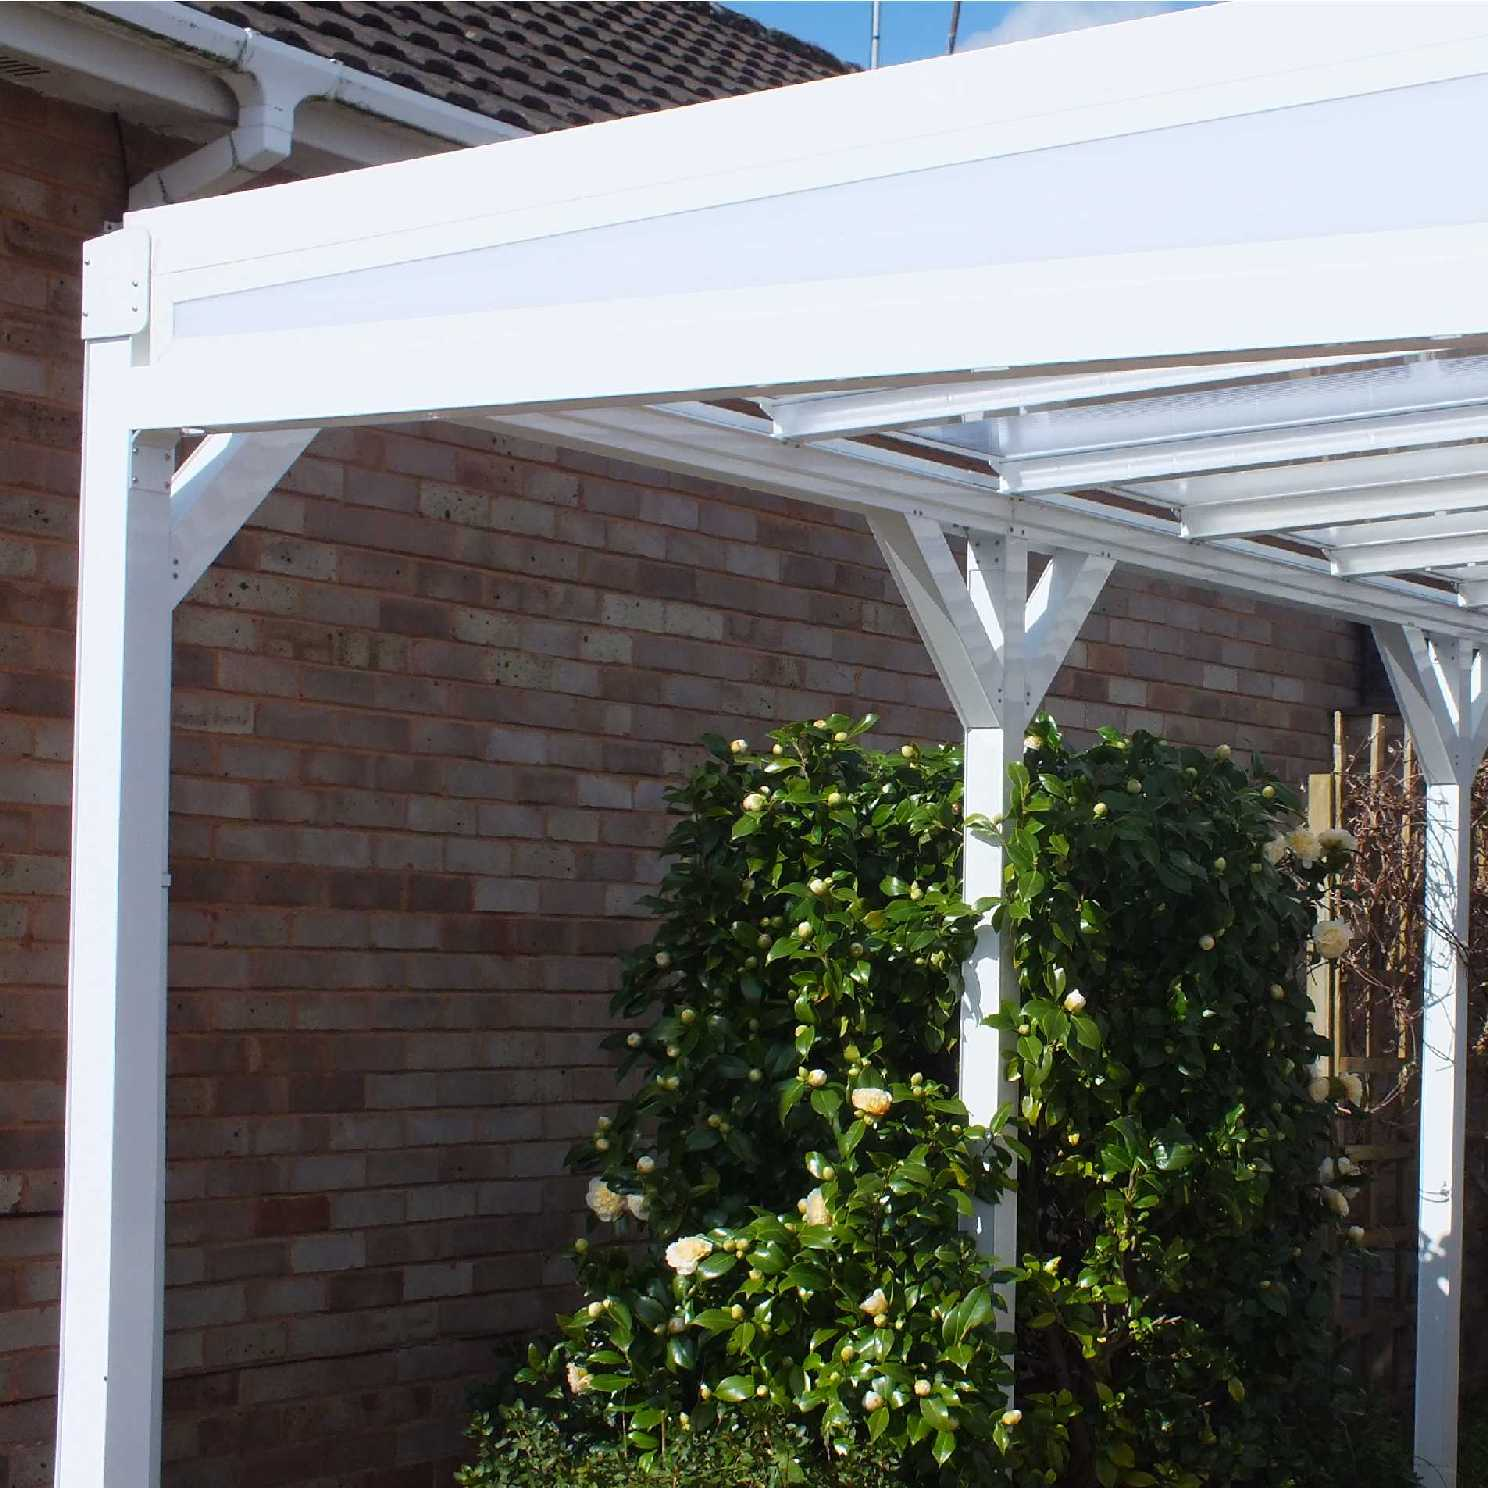 Omega Smart White Lean-To Canopy with 16mm Polycarbonate Glazing - 6.0m (W) x 2.5m (P), (3) Supporting Posts from Omega Build